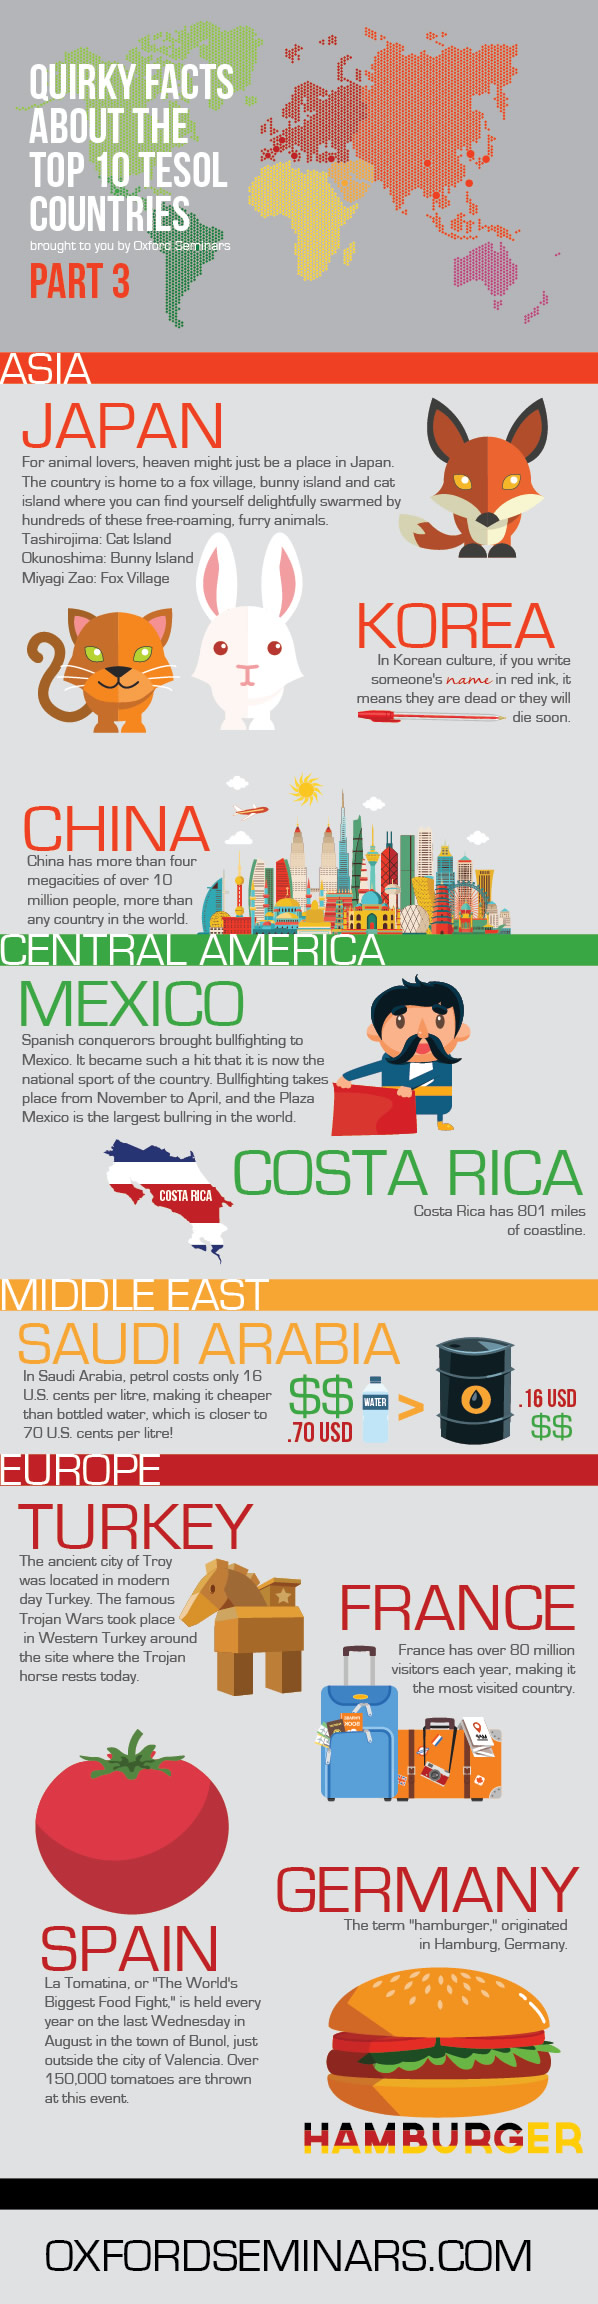 Quirky Facts about the top 10 TESOL Countries - Part 3 - Infographic